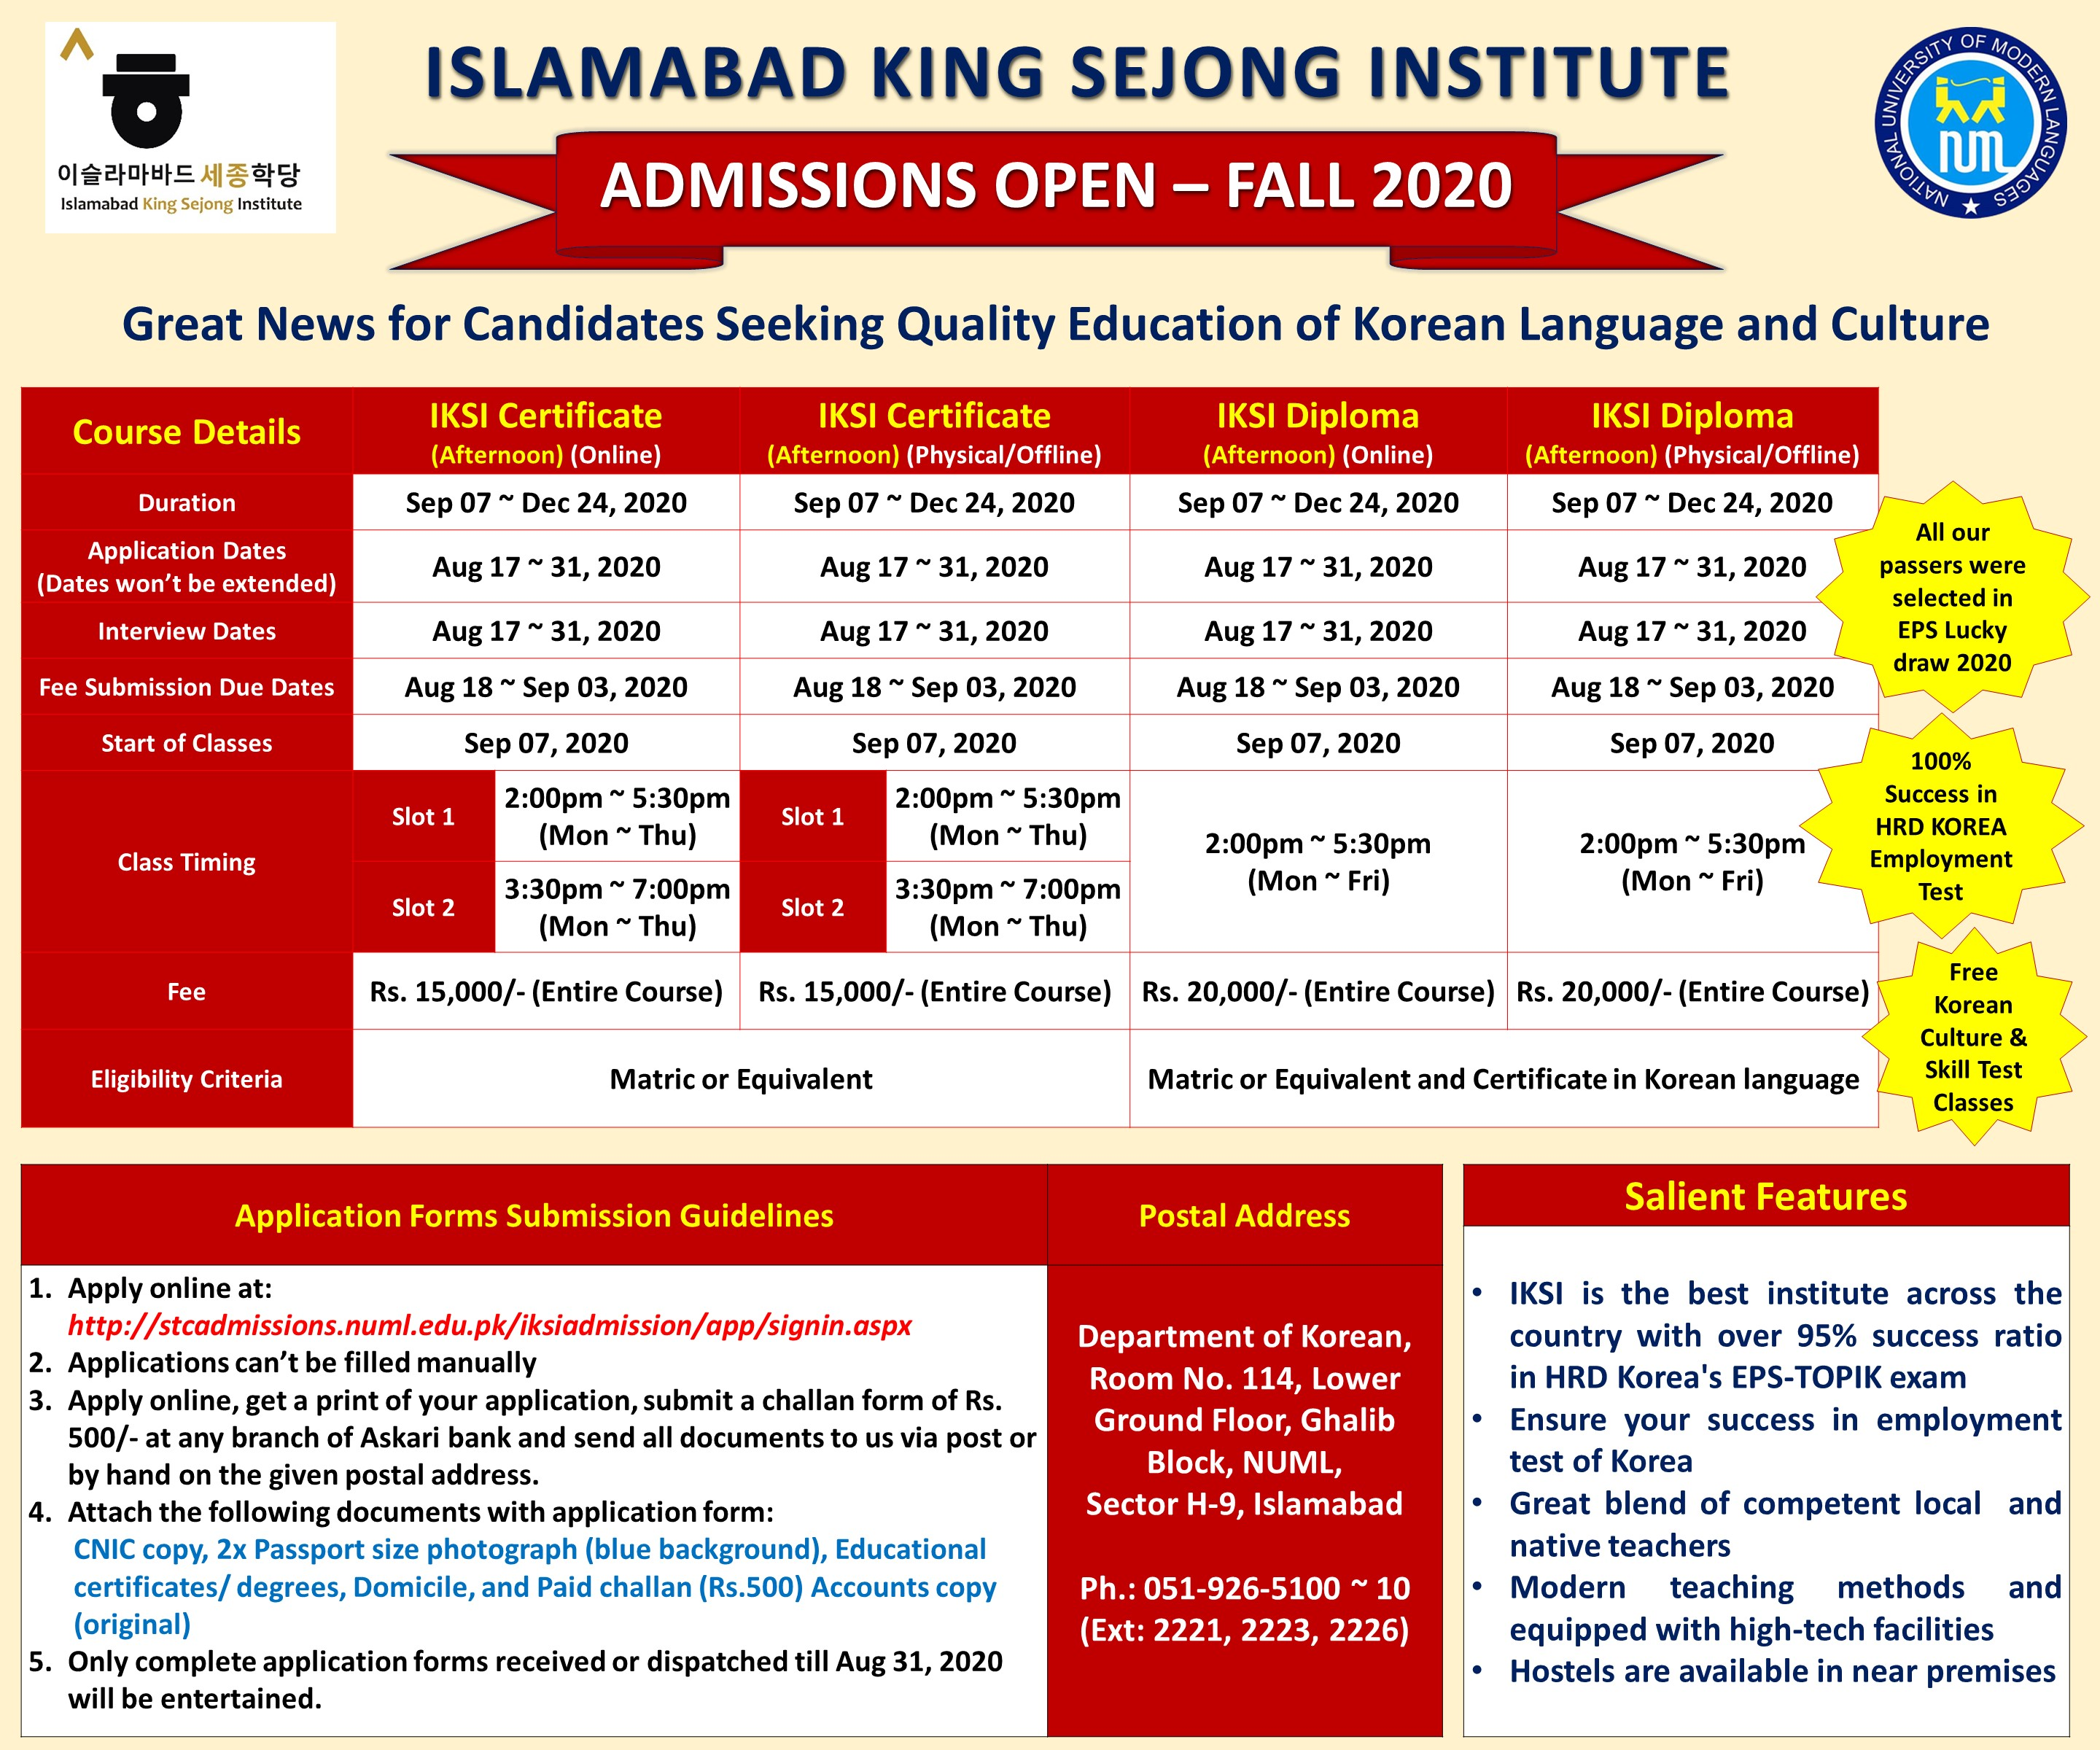 ISLAMABAD KING SEJONG INSTITUTE ADMISSIONS OPEN - FALL 2020